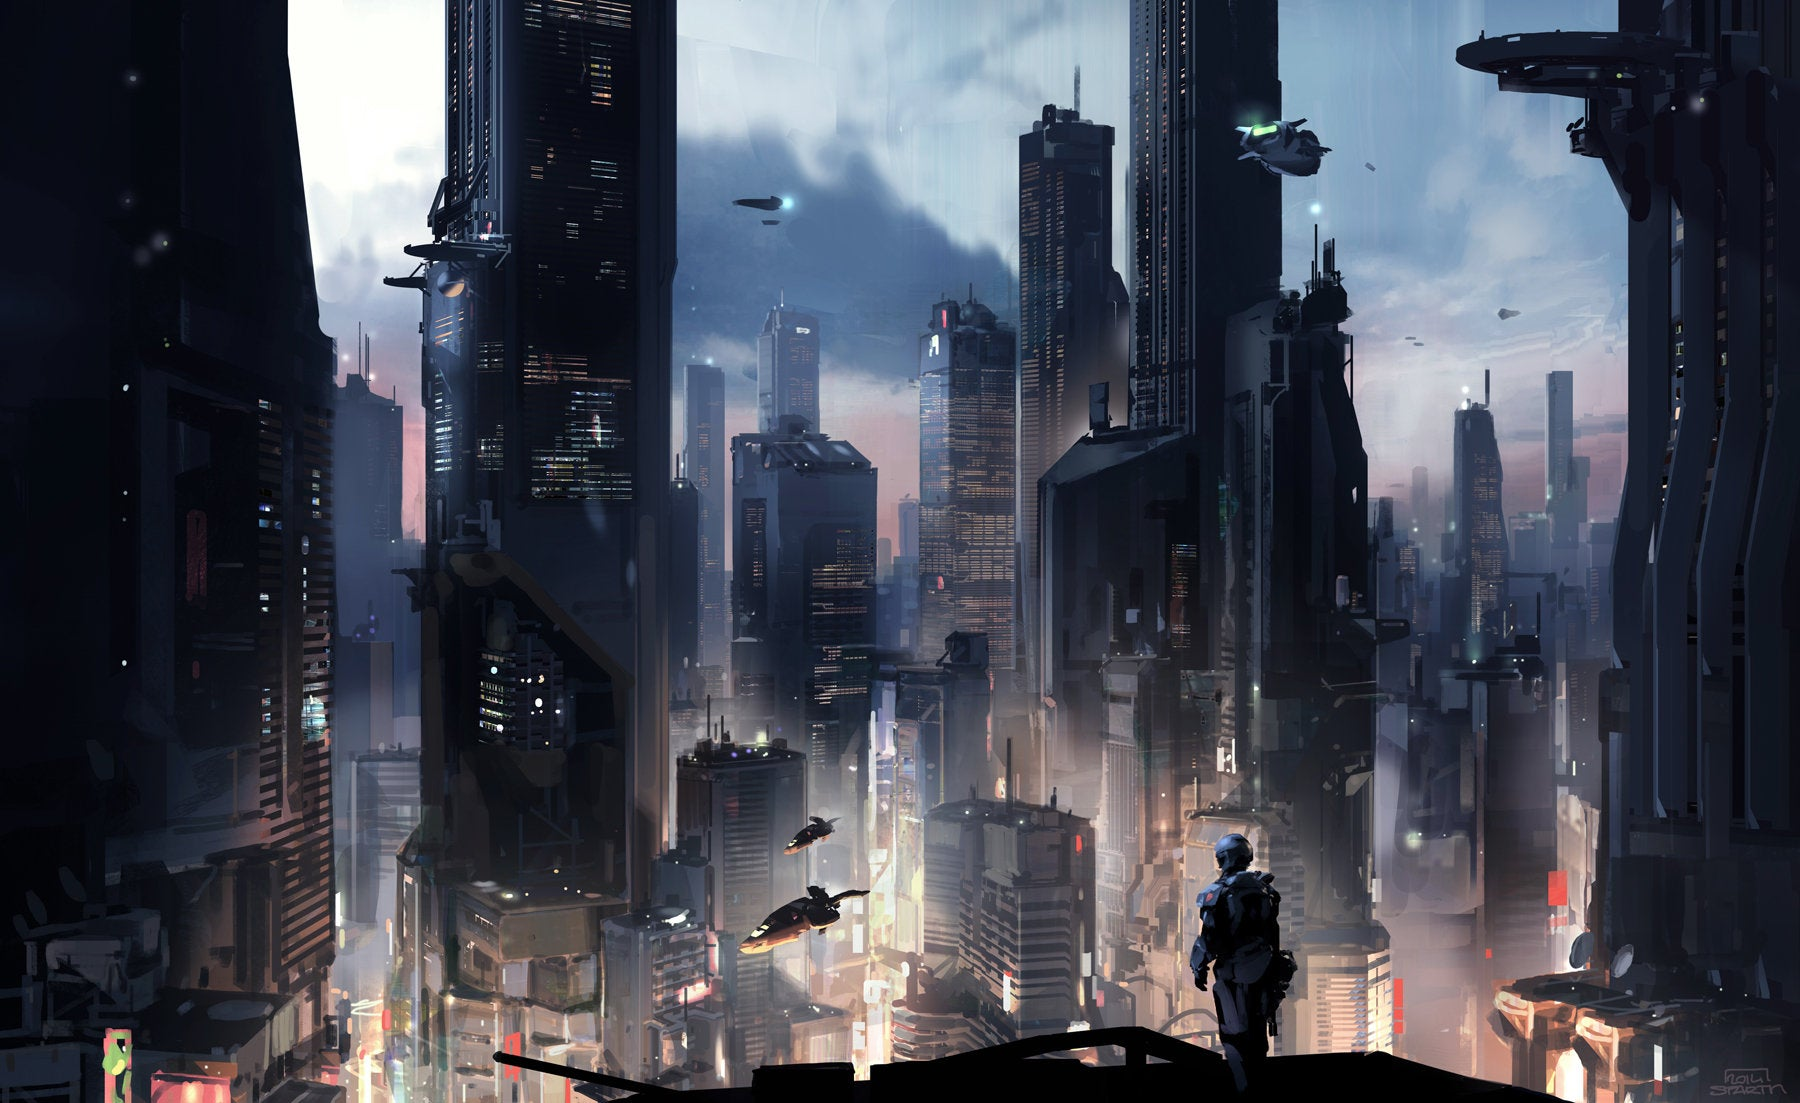 Some Of The Best Sci-Fi Art On This Planet